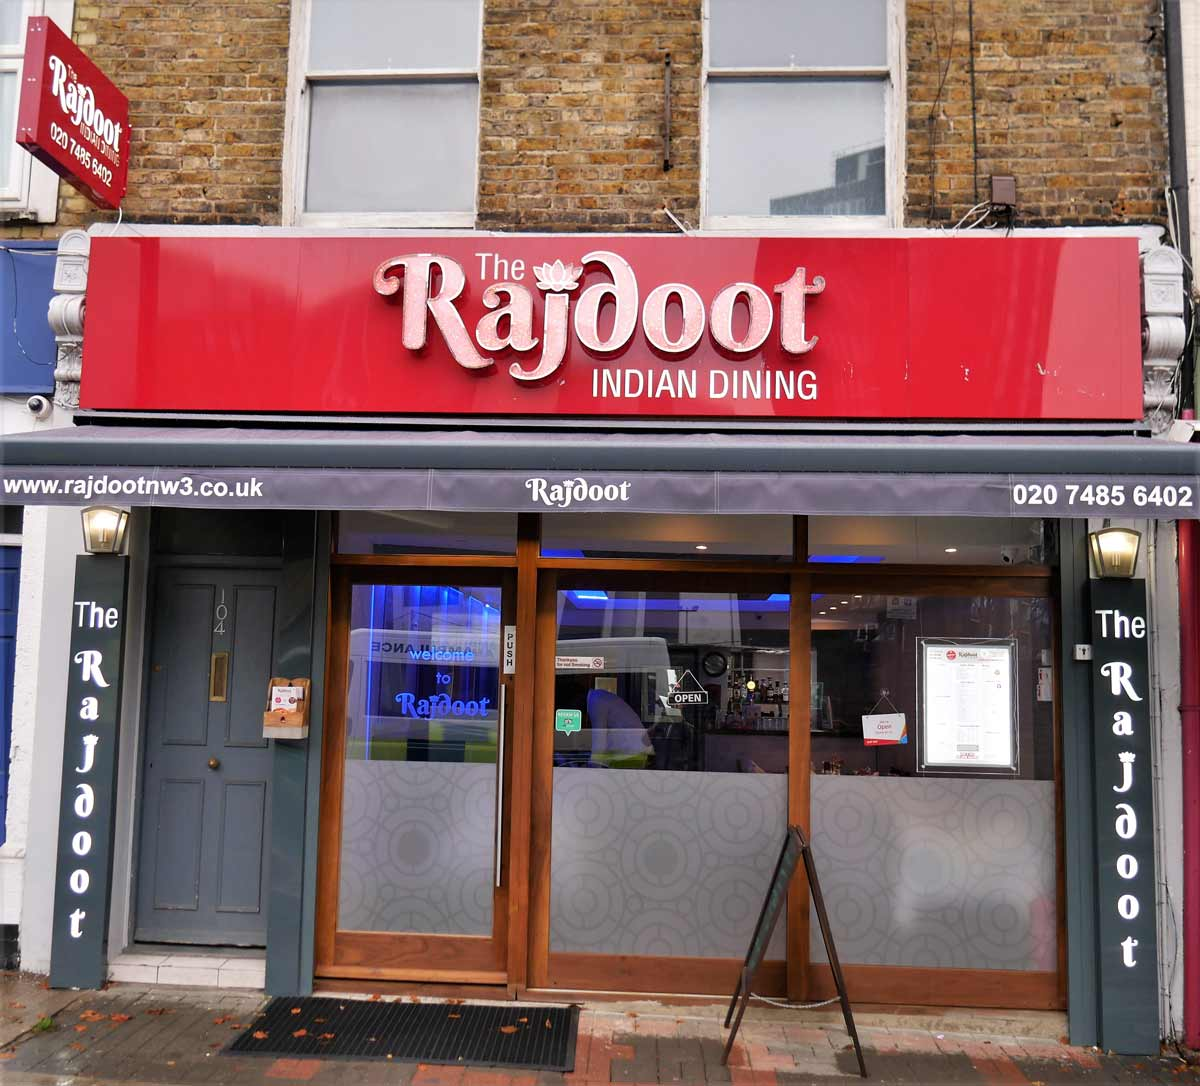 13. Gallery The Rajdoot NW3